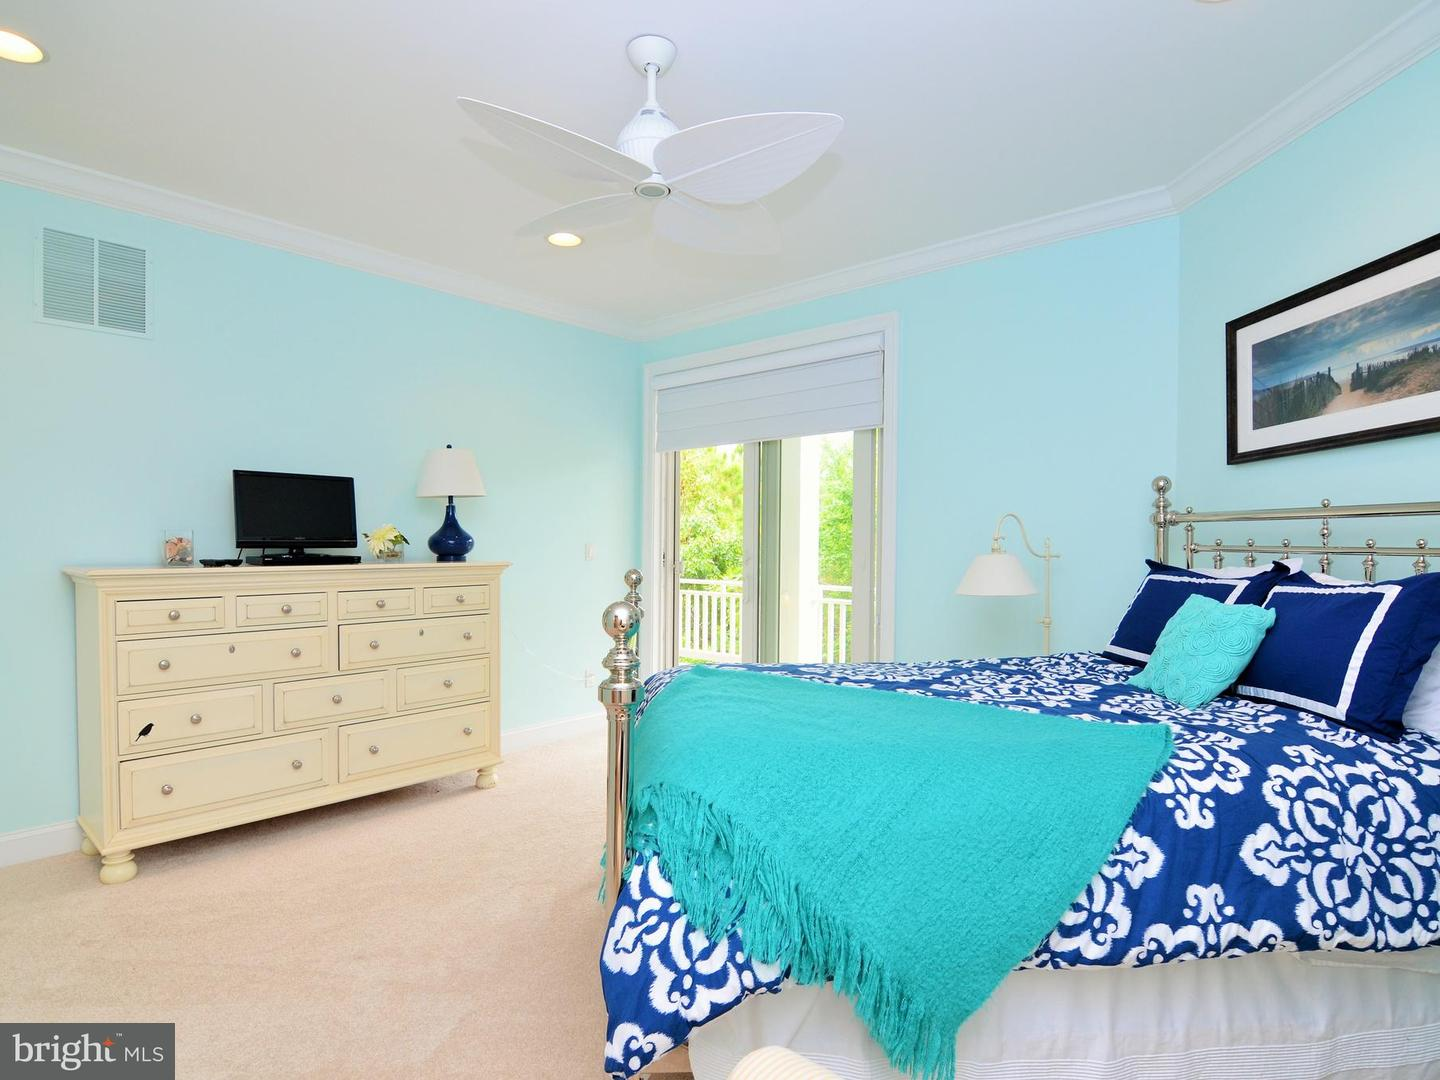 1002293530-300500807400-2018-09-25-15-08-25 31 Hall Ave | Rehoboth Beach, DE Real Estate For Sale | MLS# 1002293530  - 1st Choice Properties